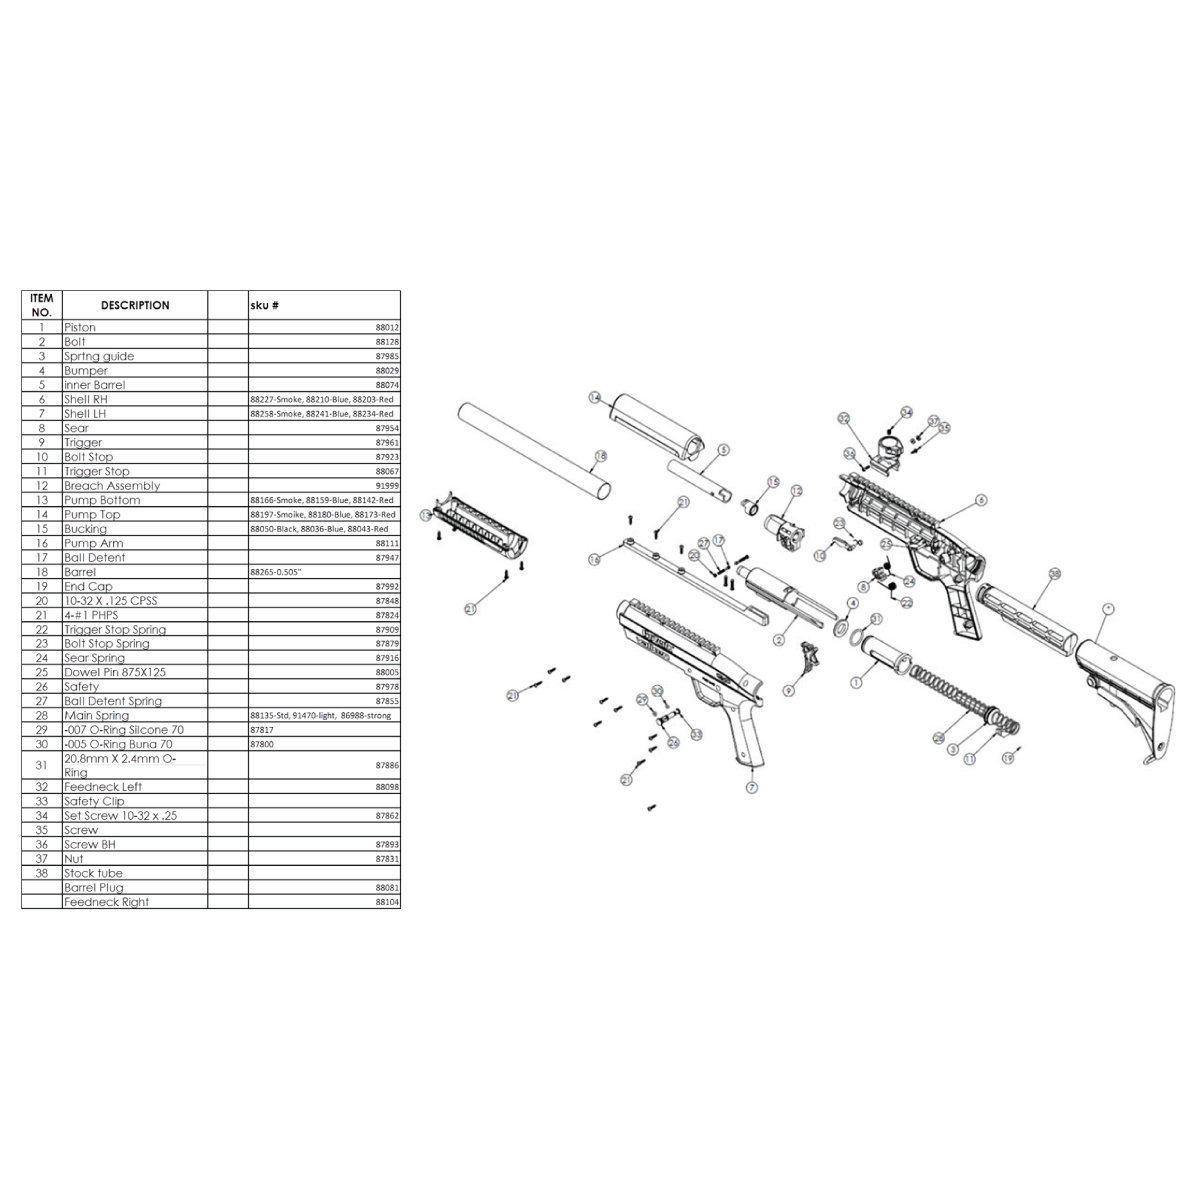 View larger image of Rifle Parts - Gotcha Part# 3 Spring Guide